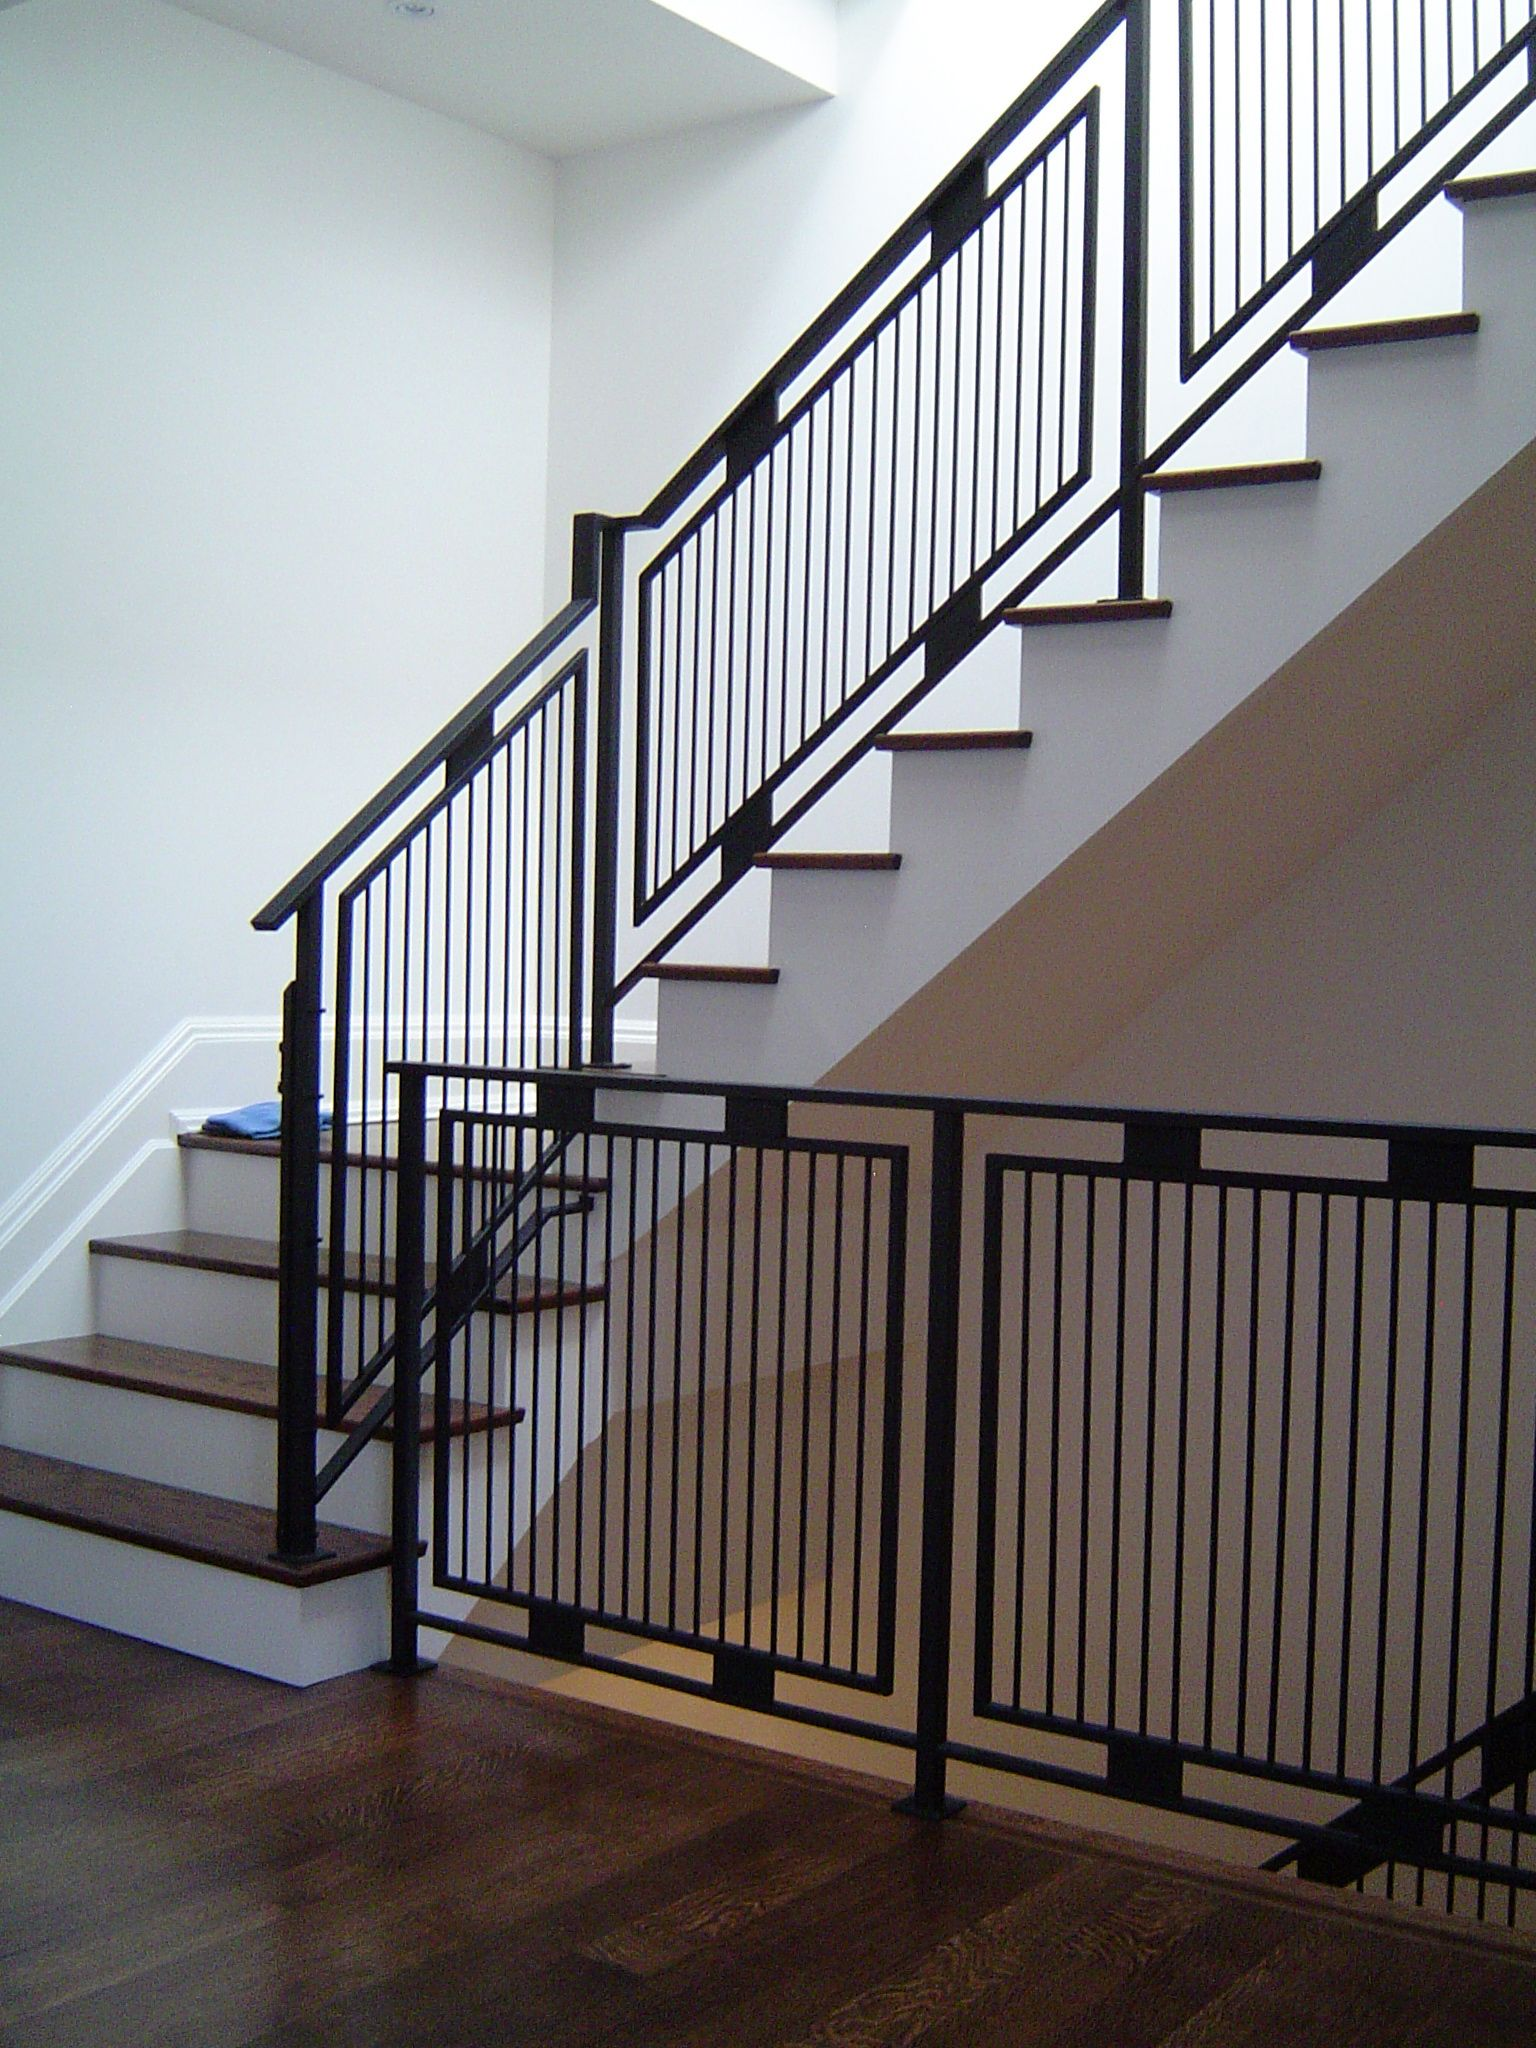 hight resolution of white walls and black railing www thesteelworks ca